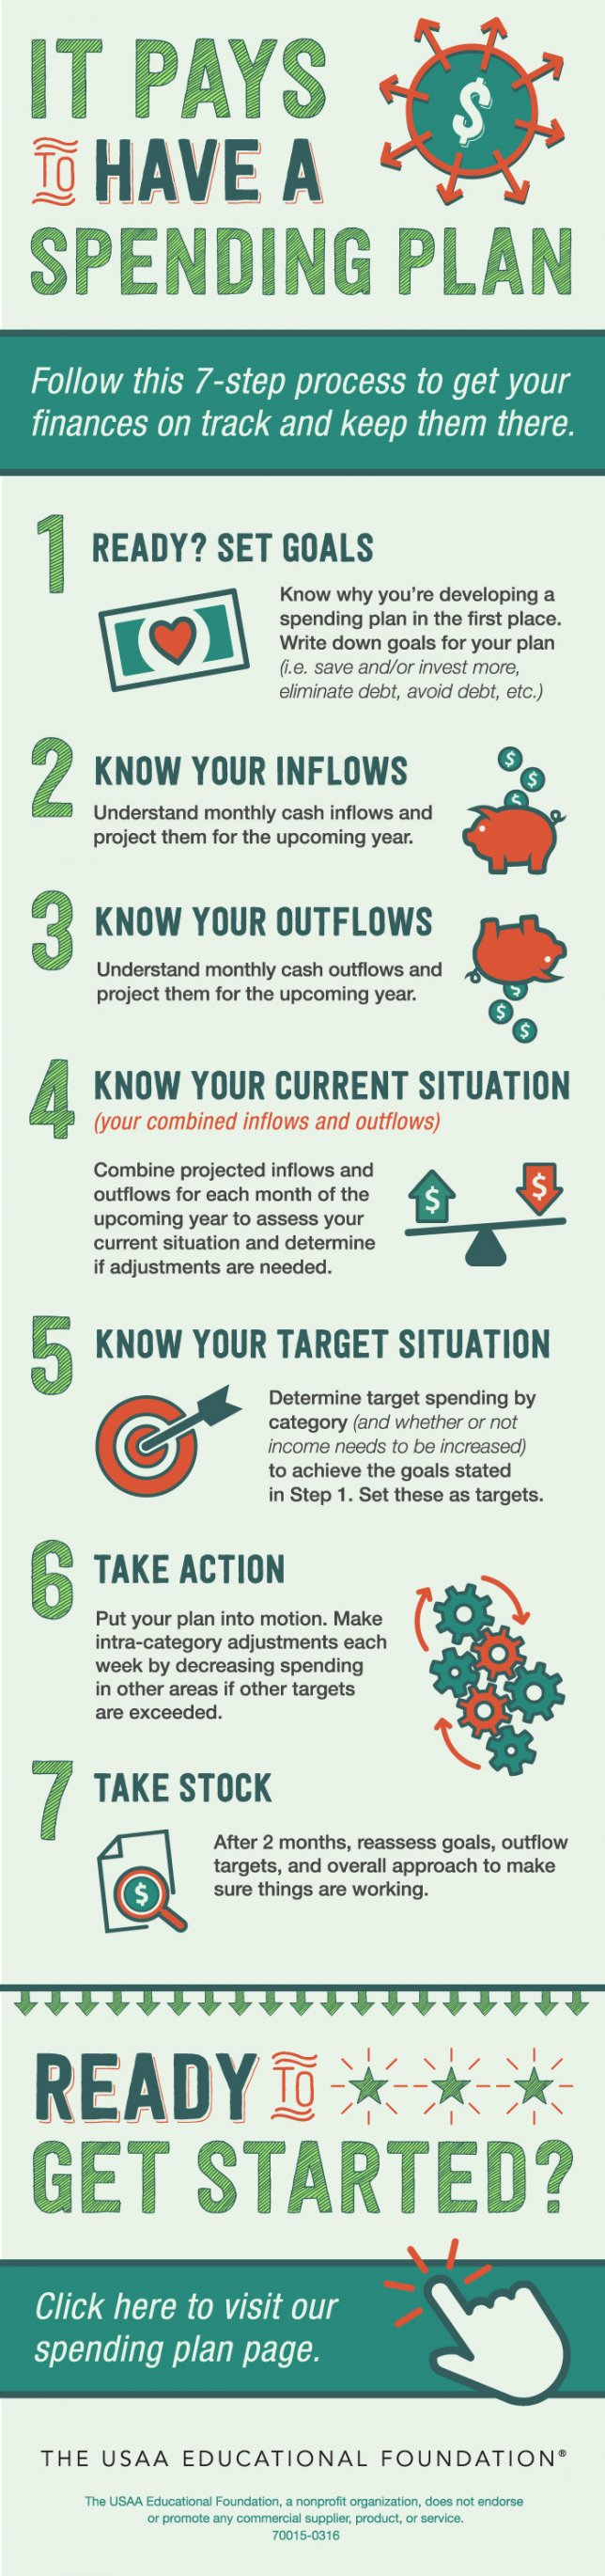 USAAEF_Infographic_SpendingPlan_OUTLINES_030416_page.jpg